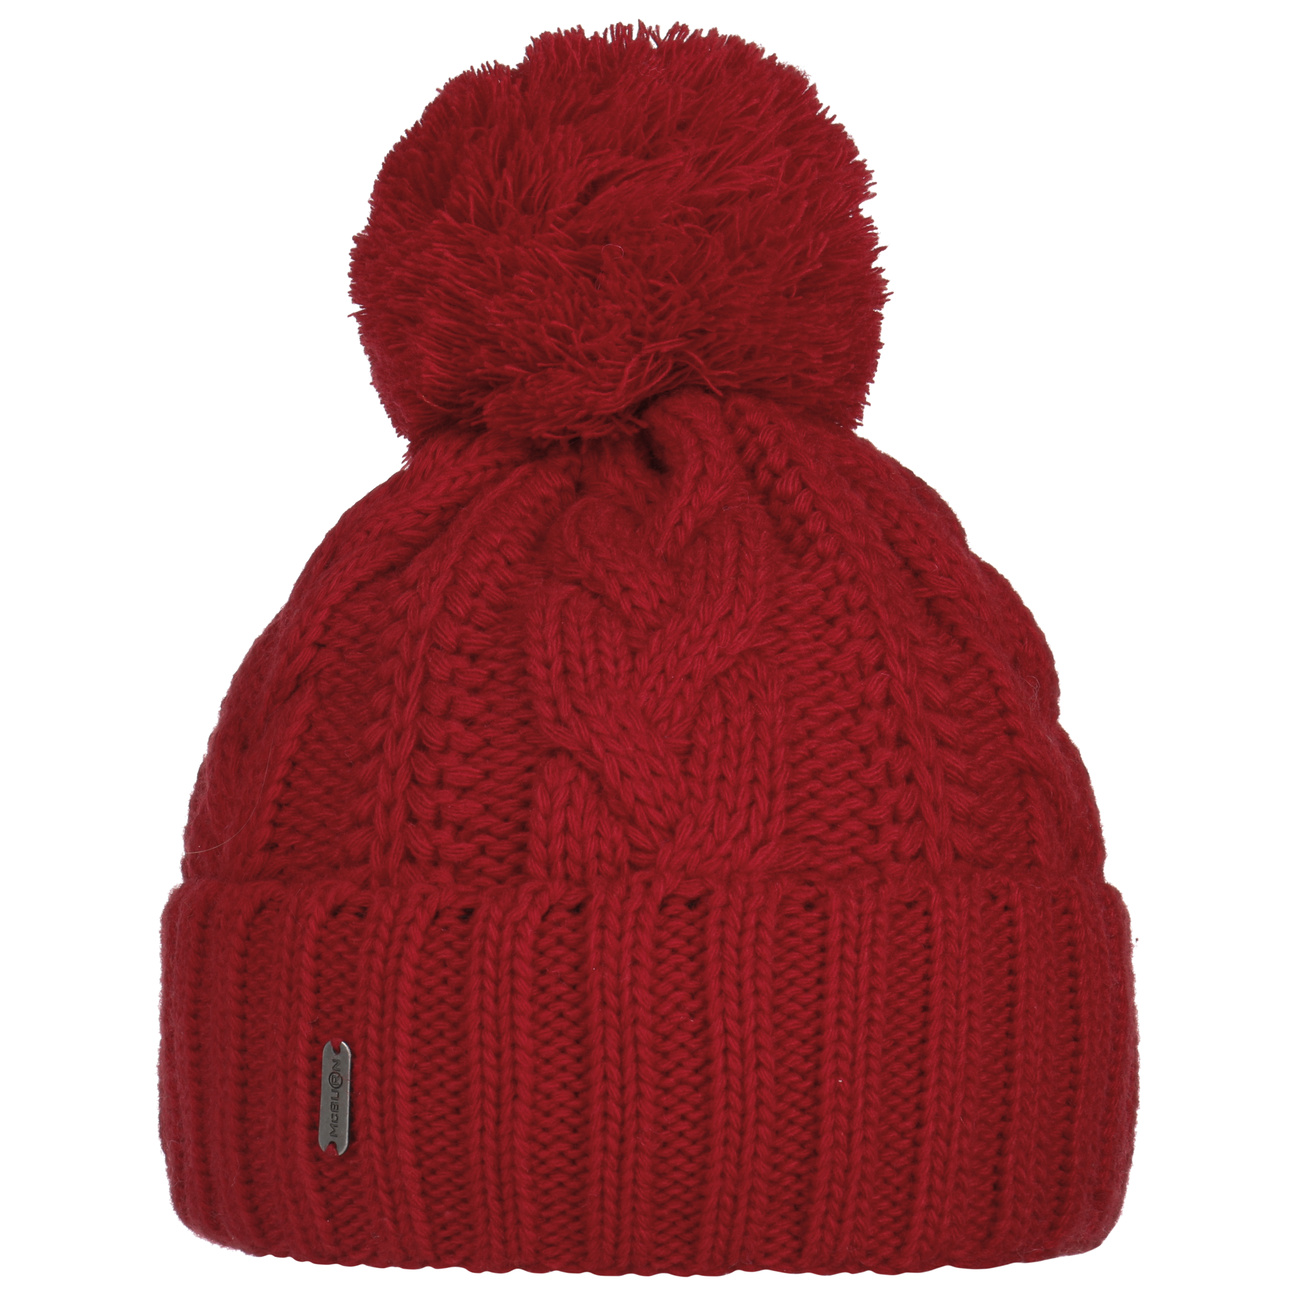 ... Giant Bobble Hat by McBURN - red 1 ... aeaa6f3635e